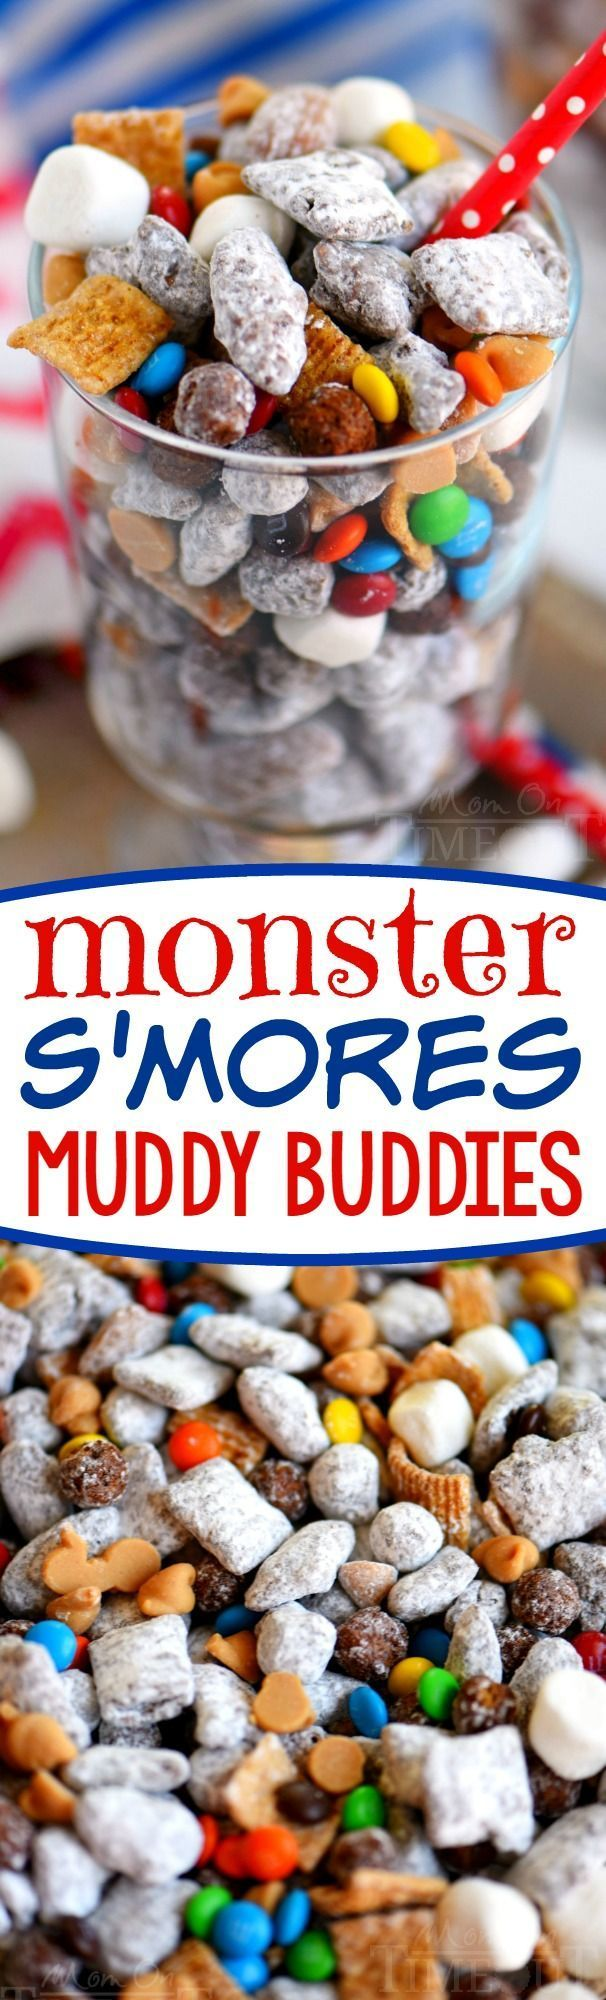 These Monster S'mores Muddy Buddies are the ultimate snack mix! Filled with all sorts of goodies like roasted almonds, peanut butter, and marshmallows - this sweet treat is hard to resist! (Summer Christmas Recipes)